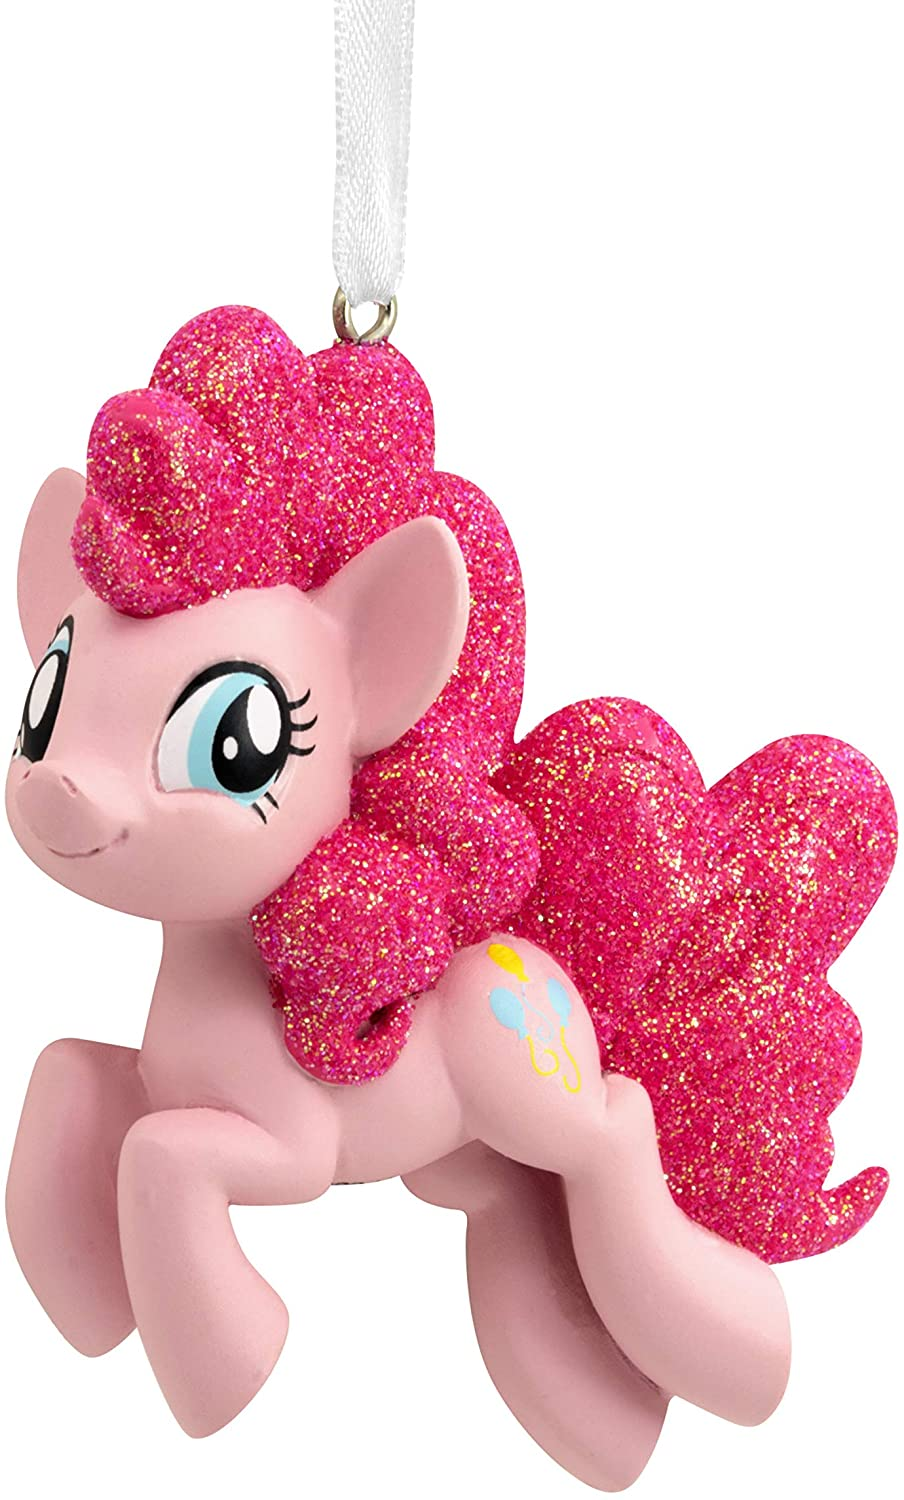 2020 My Little Pony Christmas Ornaments New My Little Pony Pinkie Pie 2020 Hallmark Christmas Ornament